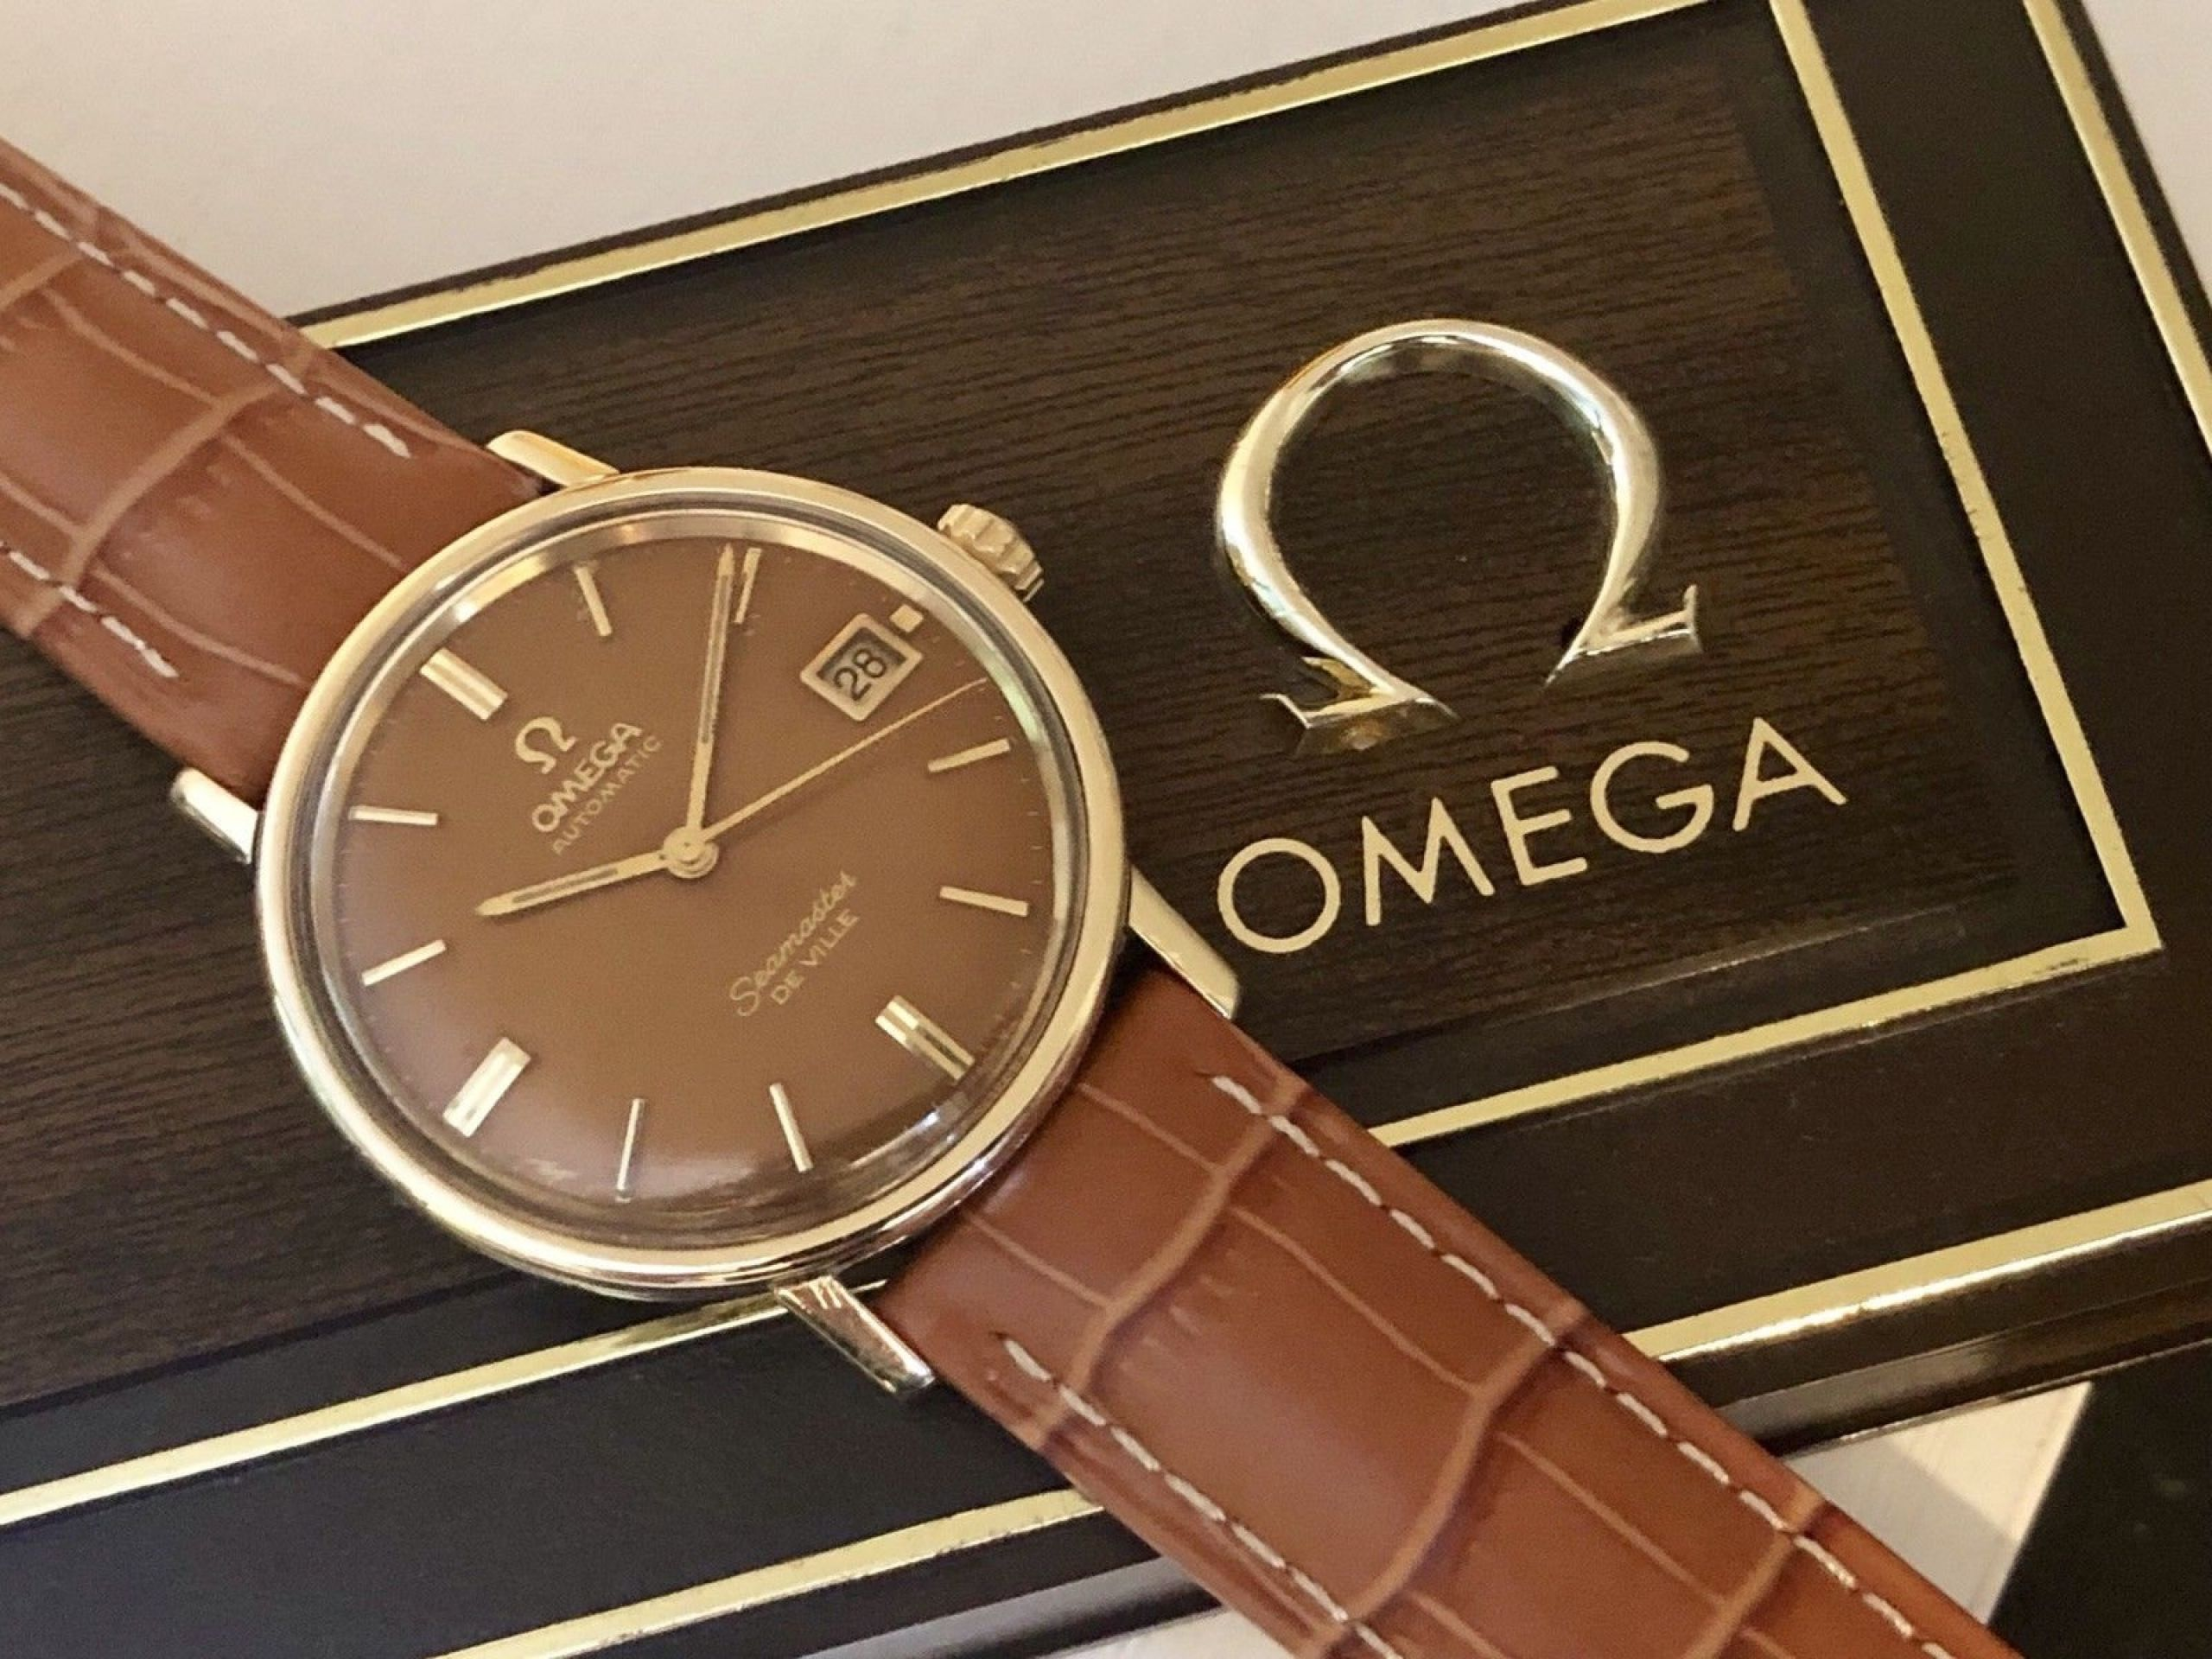 OMEGA SEAMASTER DE VILLE VINTAGE WATCH CAL 565 MECHANICAL AUTOMATIC 14K GOLD